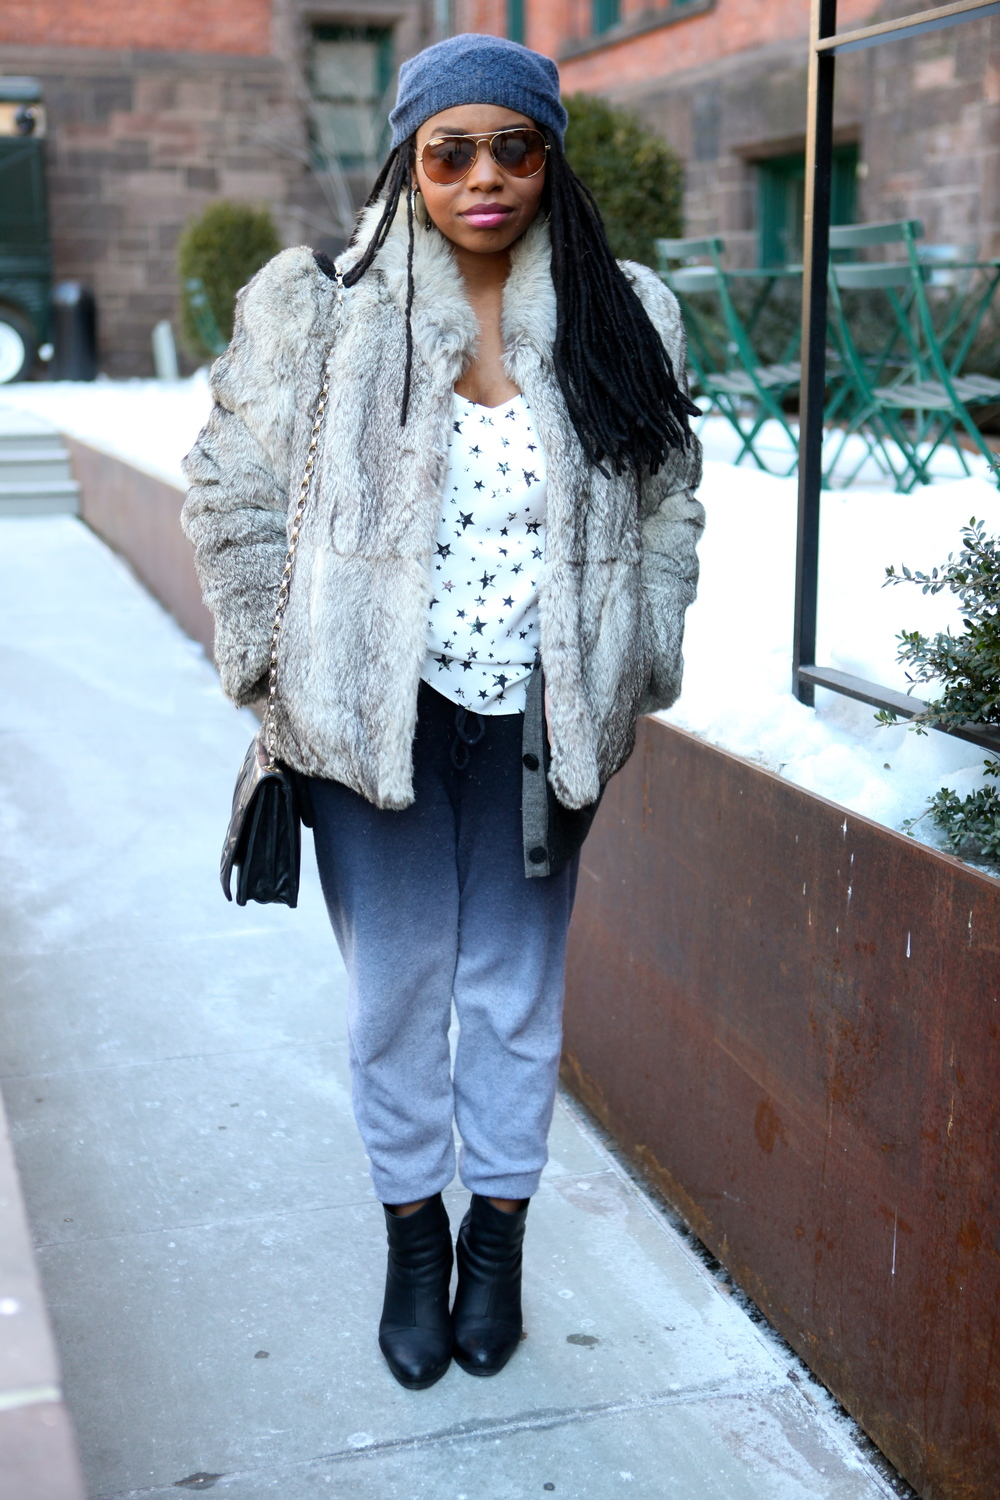 Coat: Vintage Faux Fur, Tank: Tibi, Cardigan: Ainsley, Sunglasses: Ray Ban, Boots: Rag & Bone